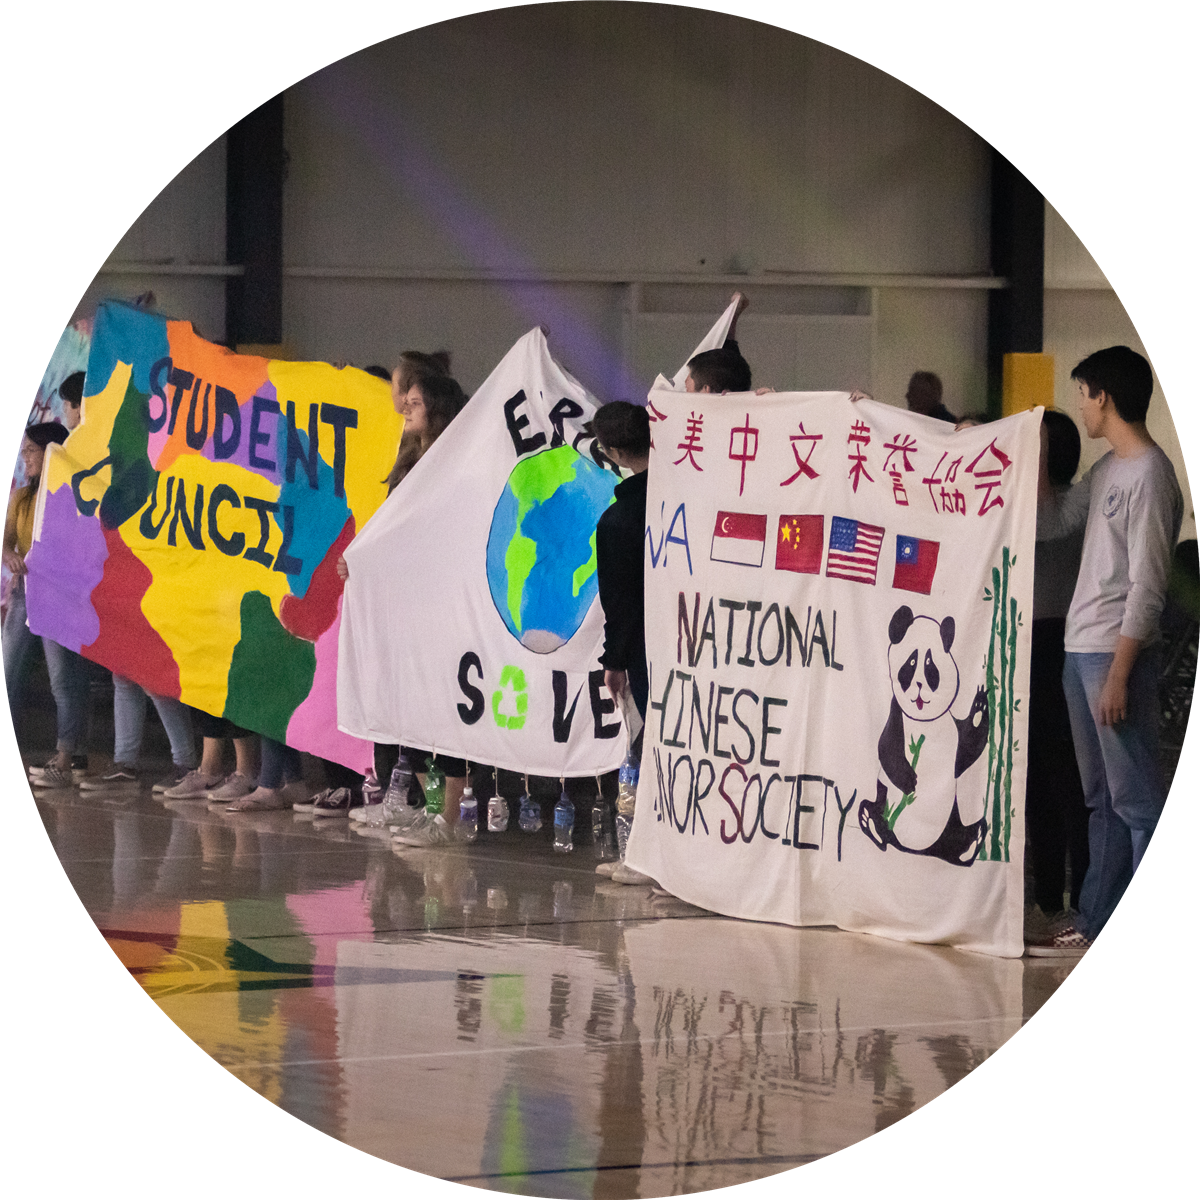 Students with painted banners for student council, earthsave, and national chinese honor society